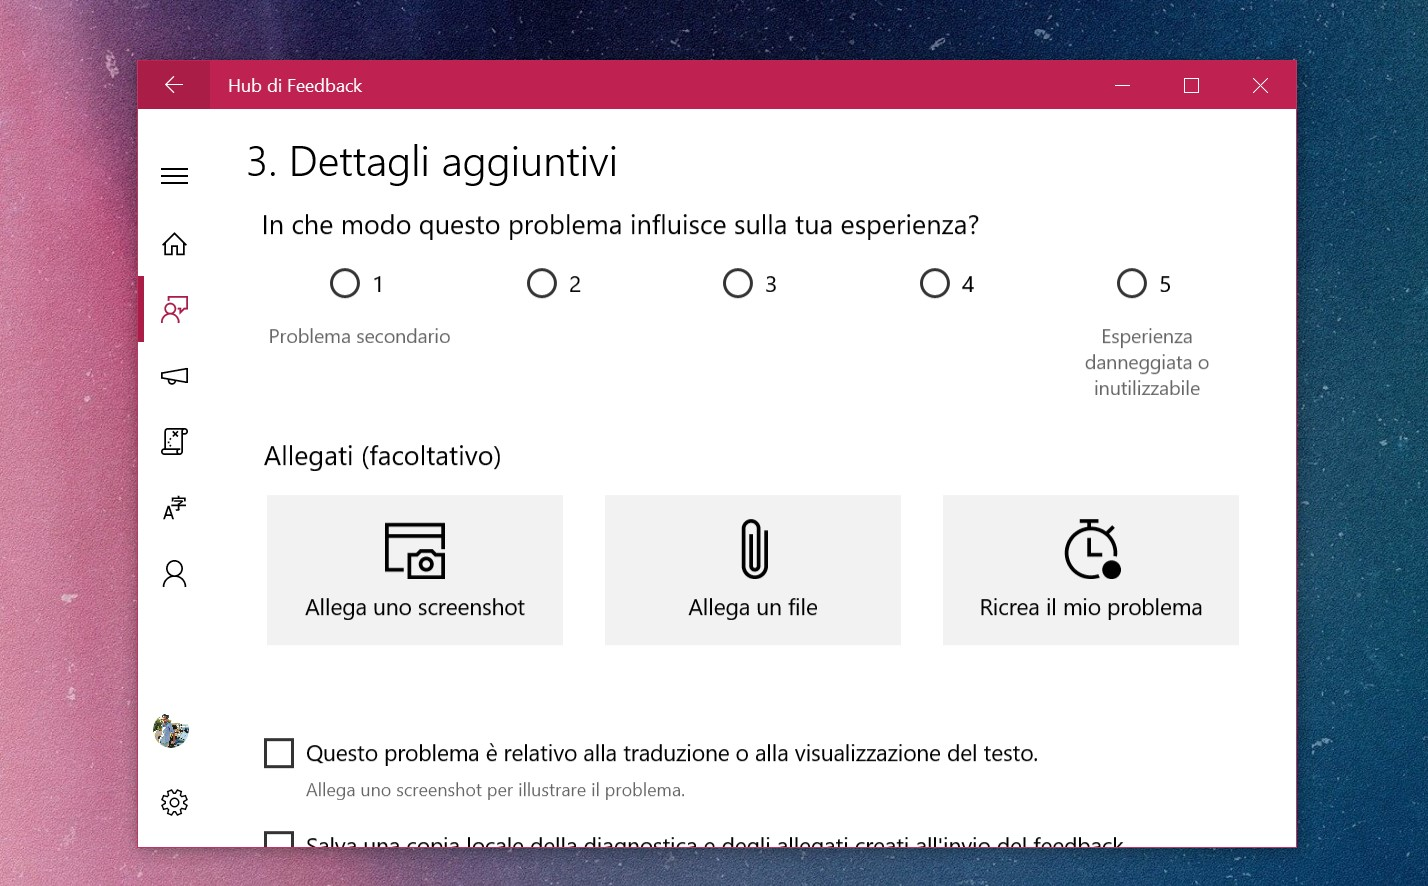 Windows 10 Hub di Feedback problema grave